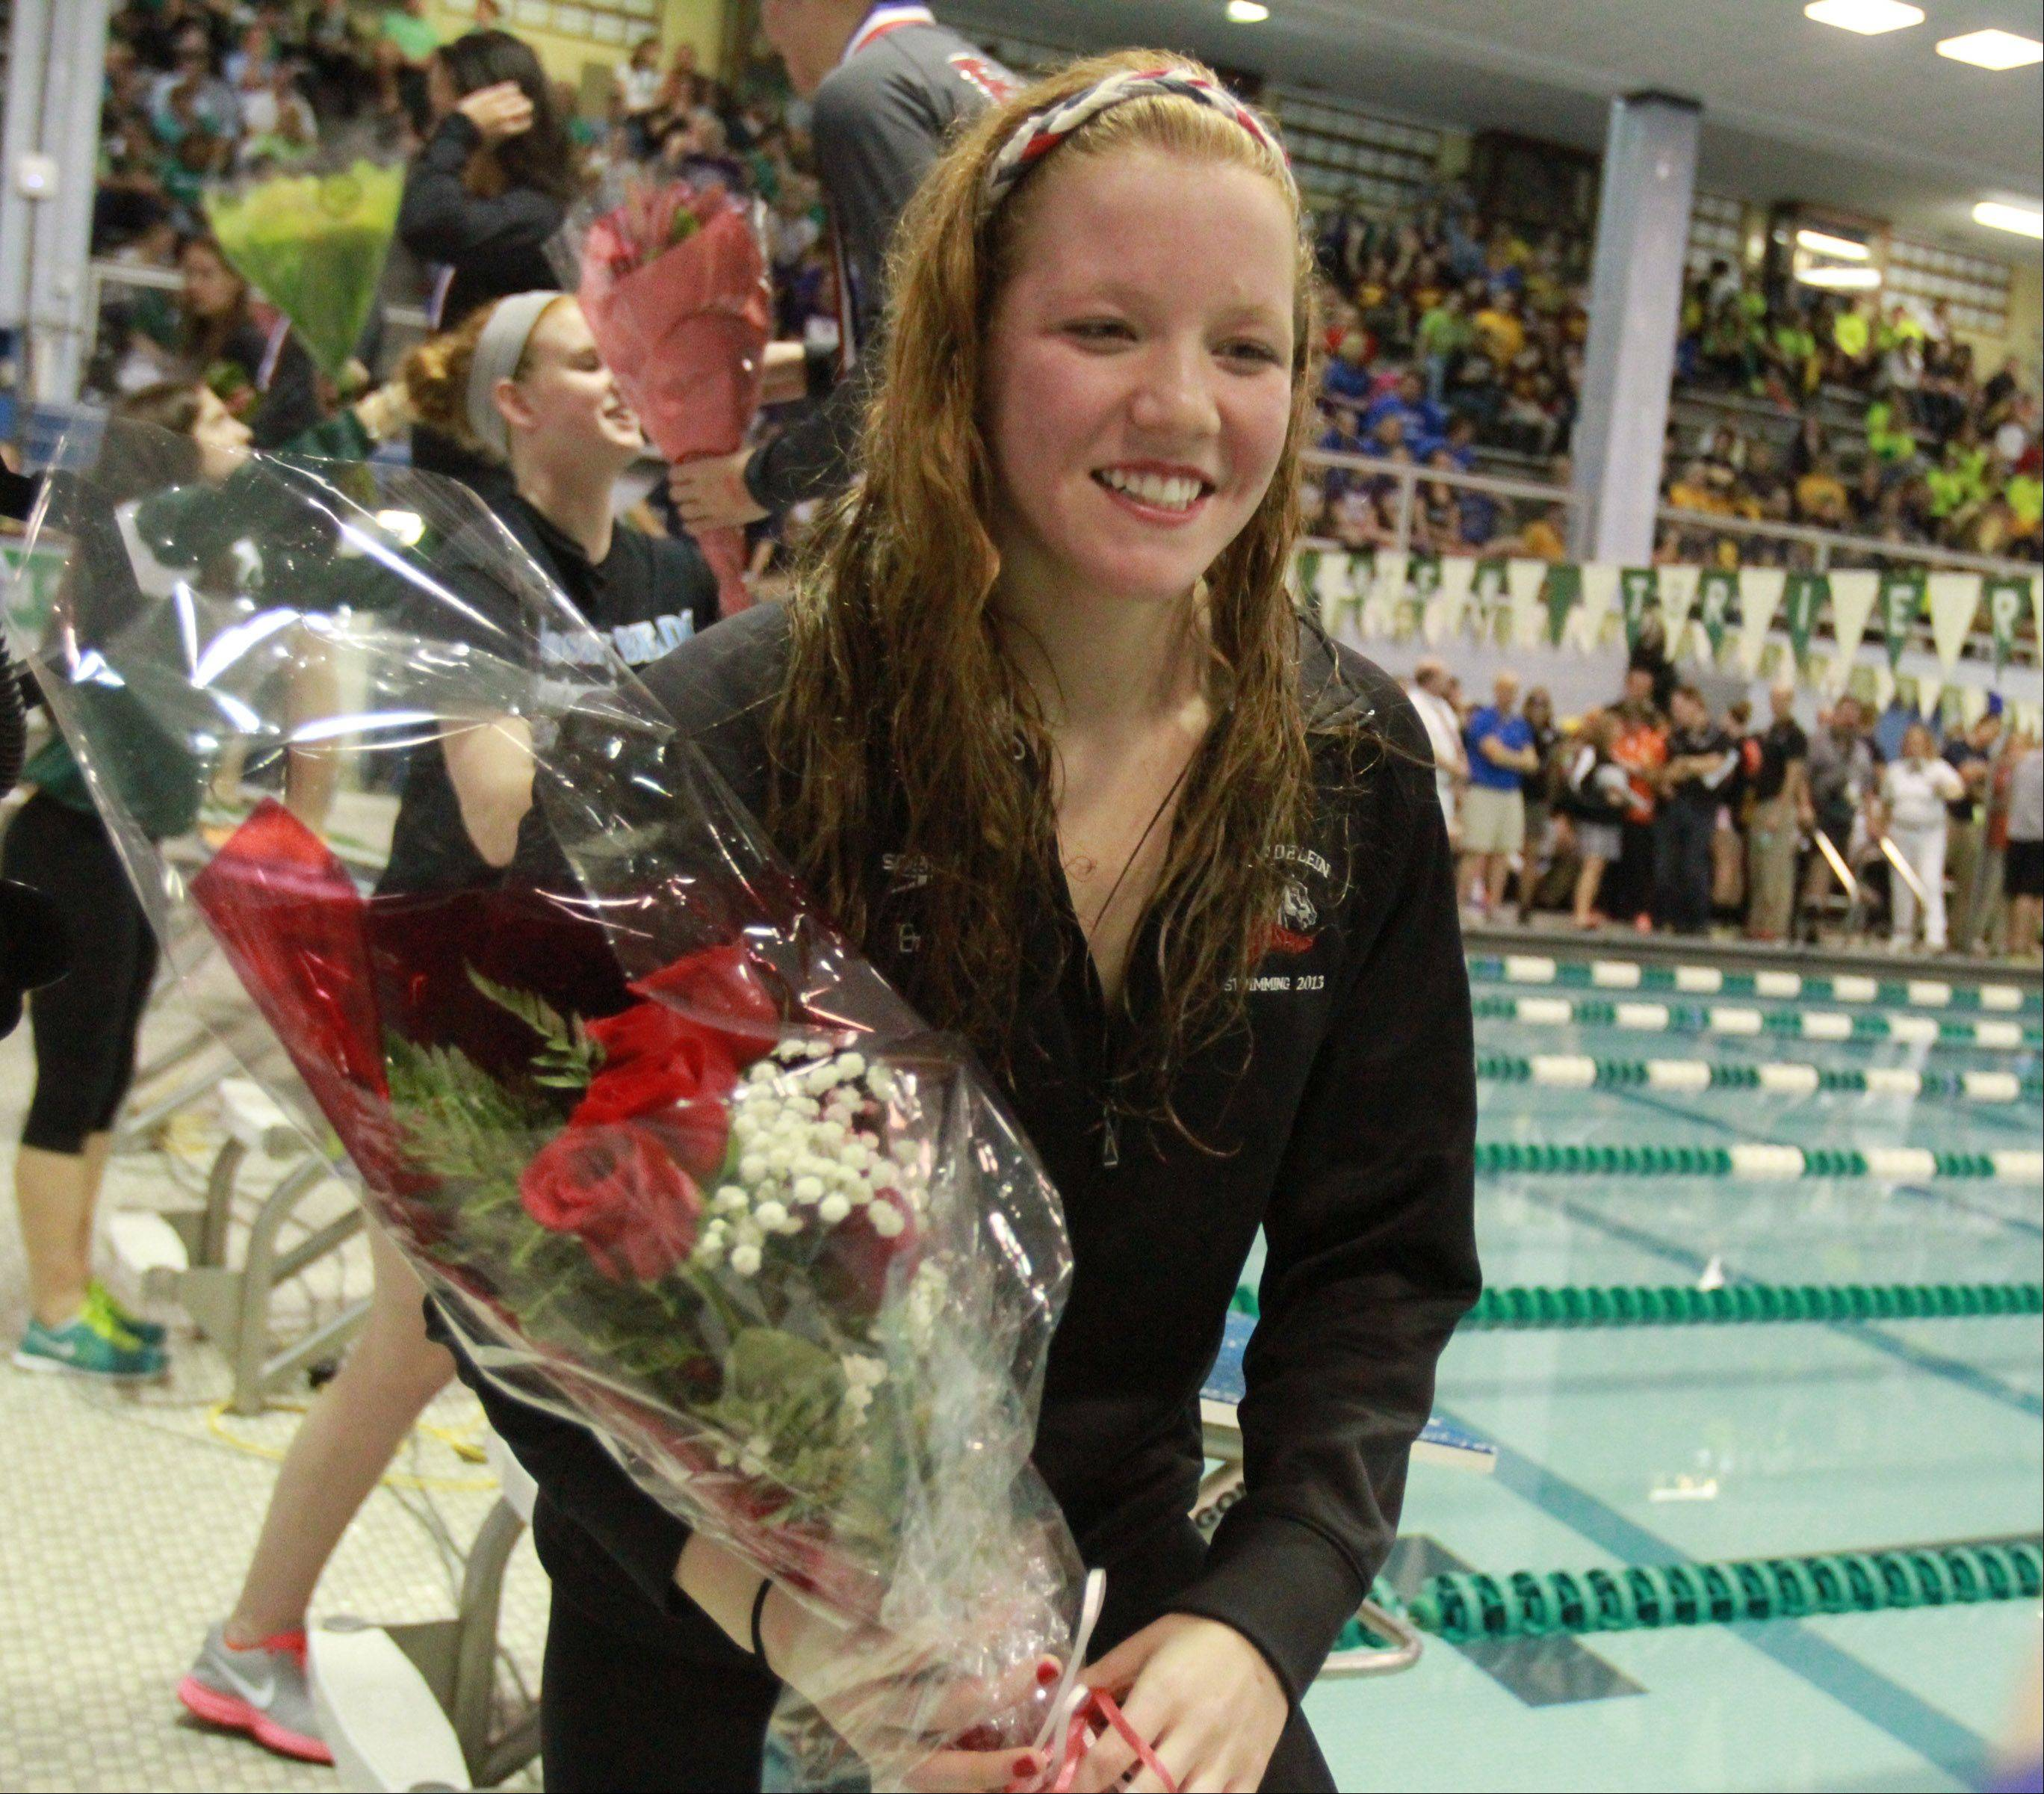 Mundelein's Erin Falconer placed second in the 100-yard freestyle at the girls swimming state finals on Saturday at New Trier.